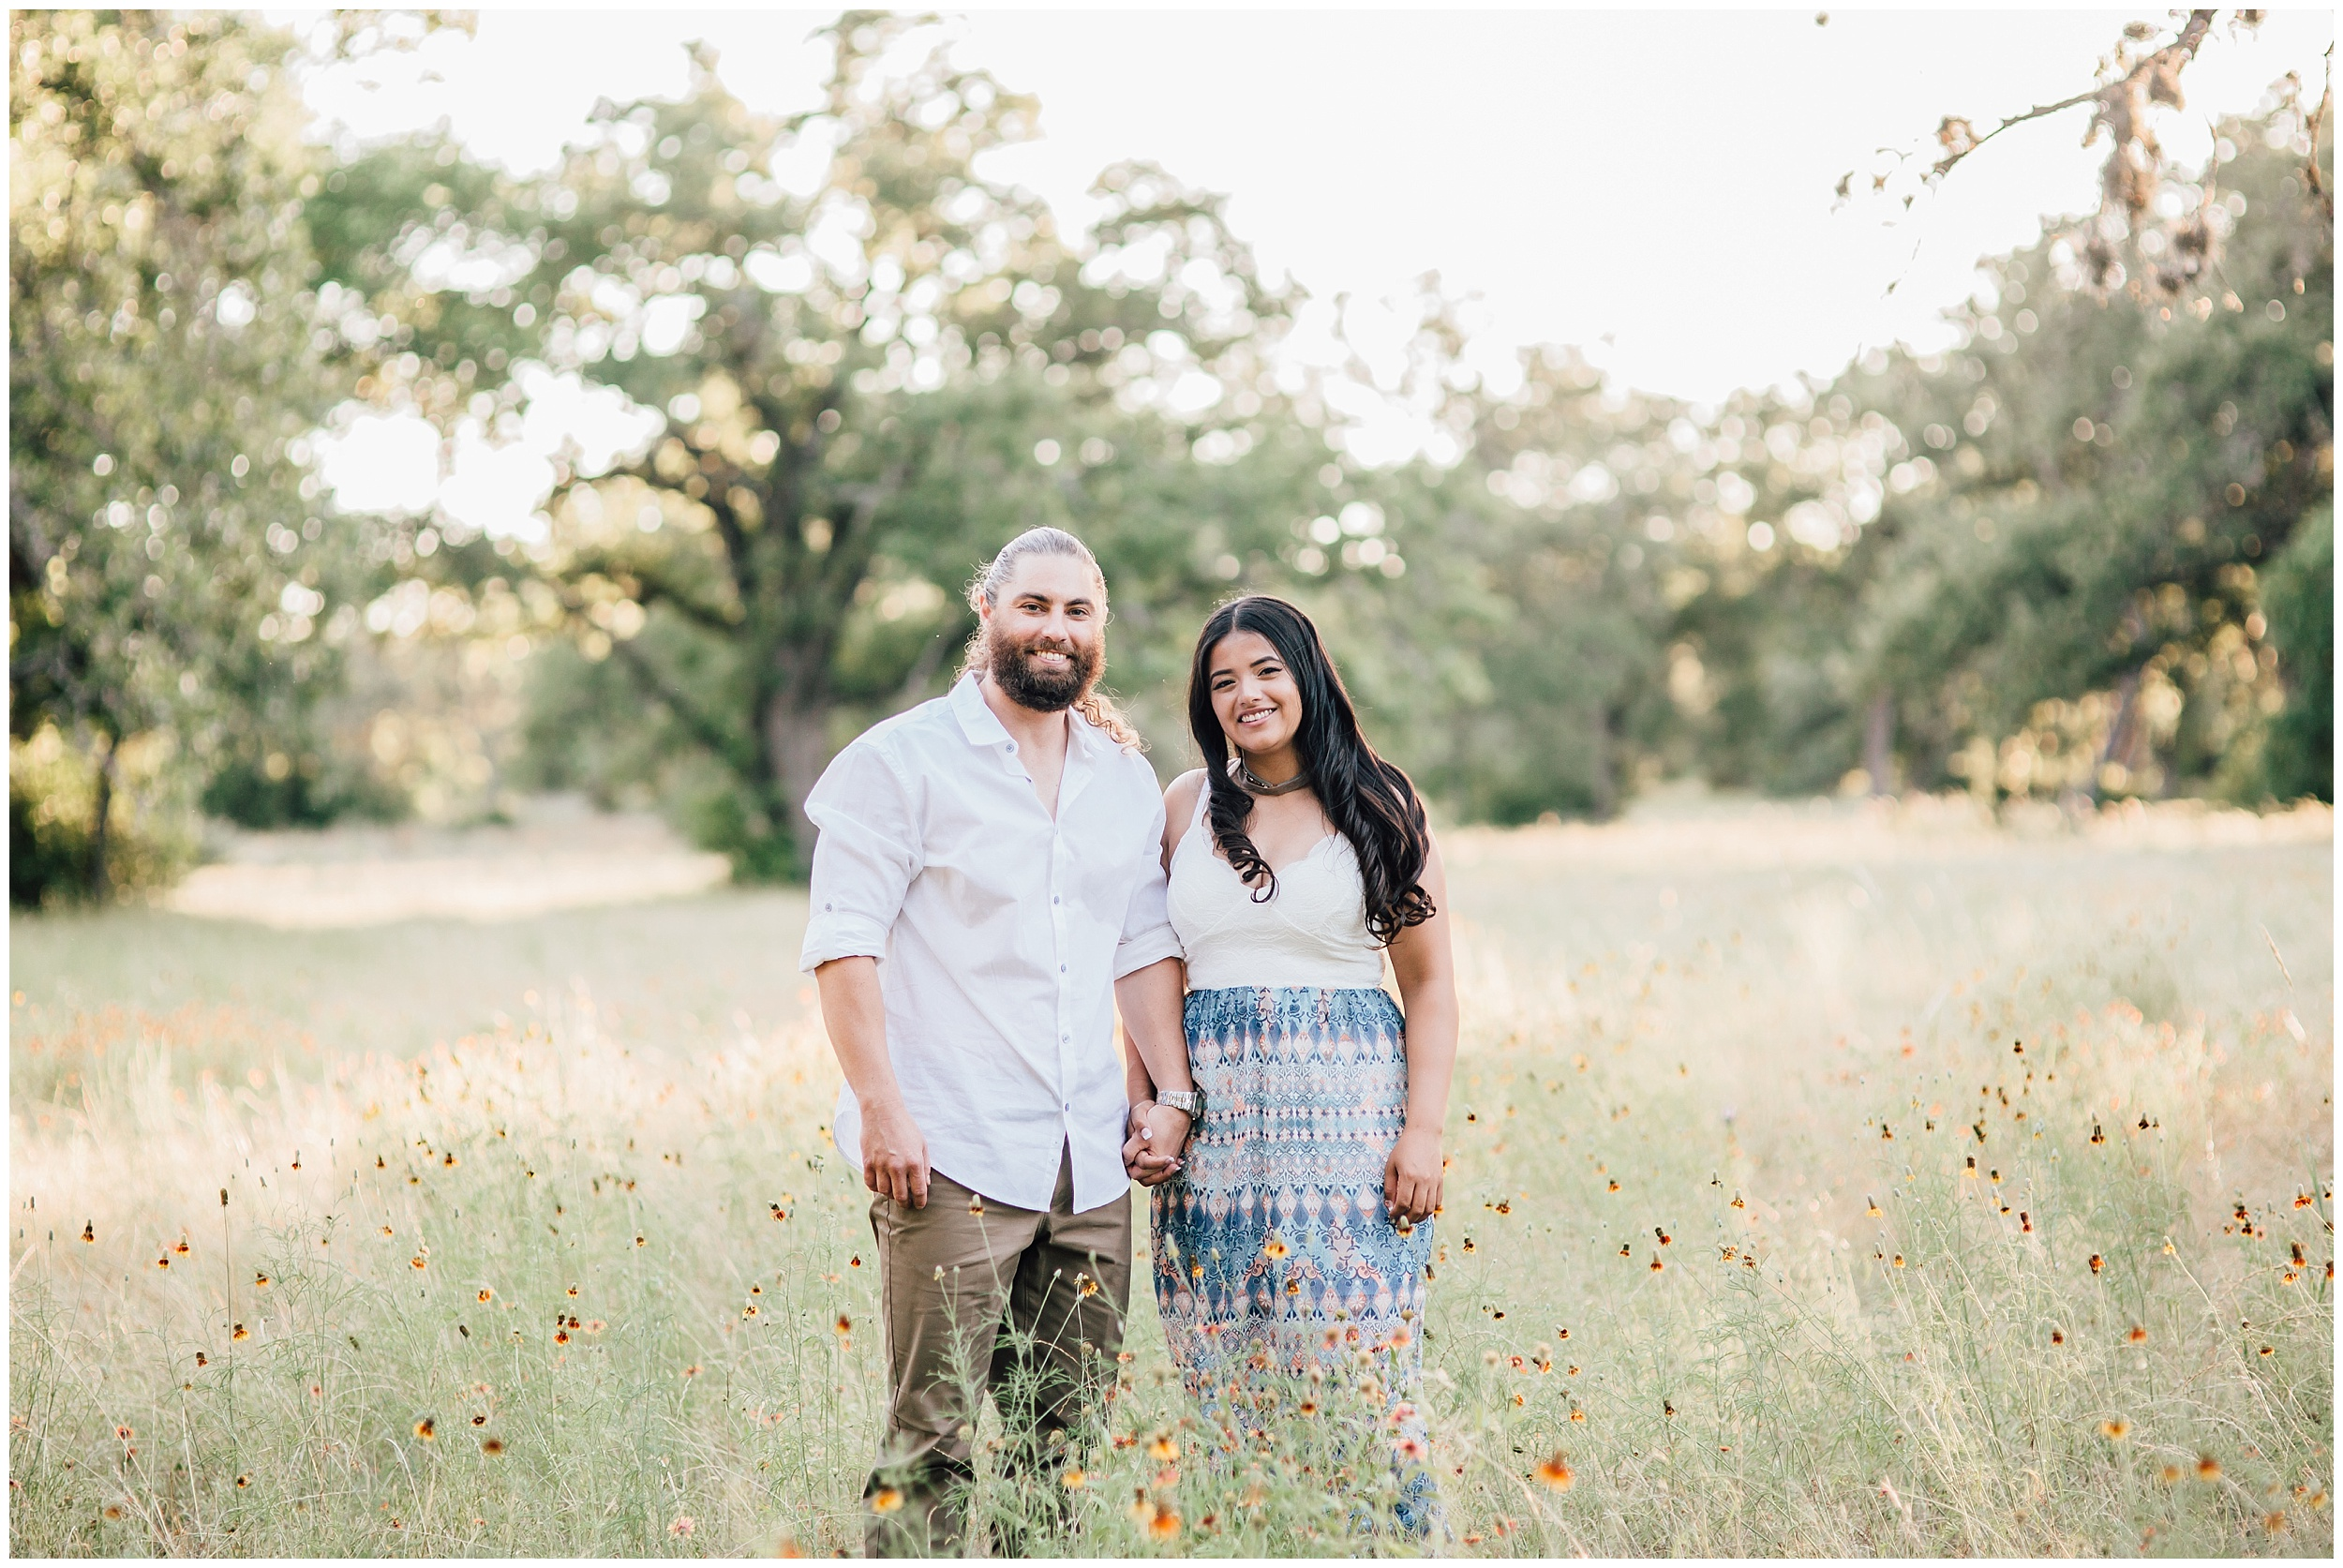 Austin Family Photographer15.jpg